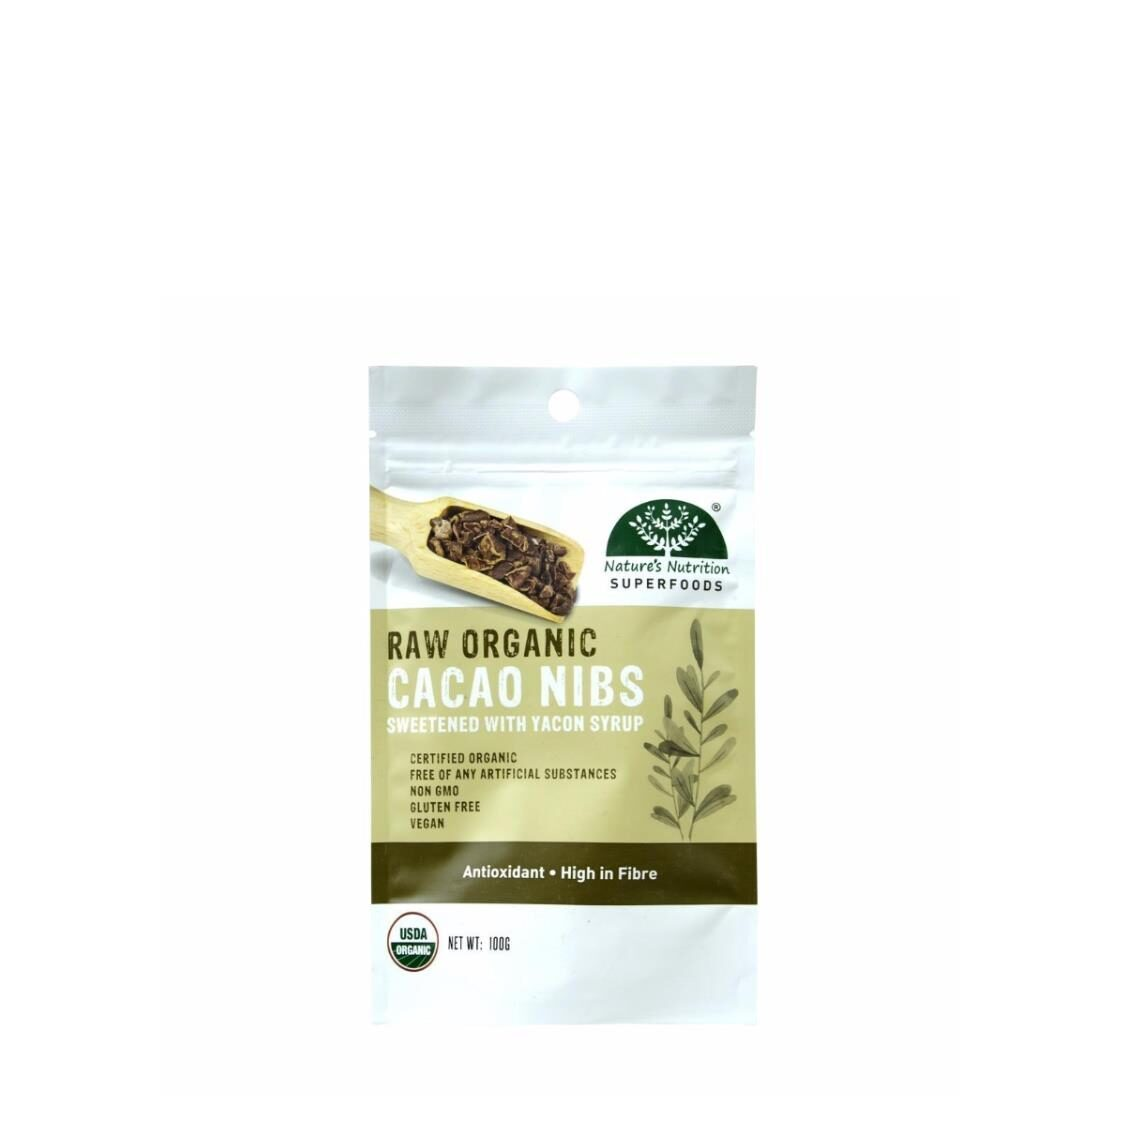 Natures Nutrition Organic Cacao Nibs with Yacon Syrup 100g